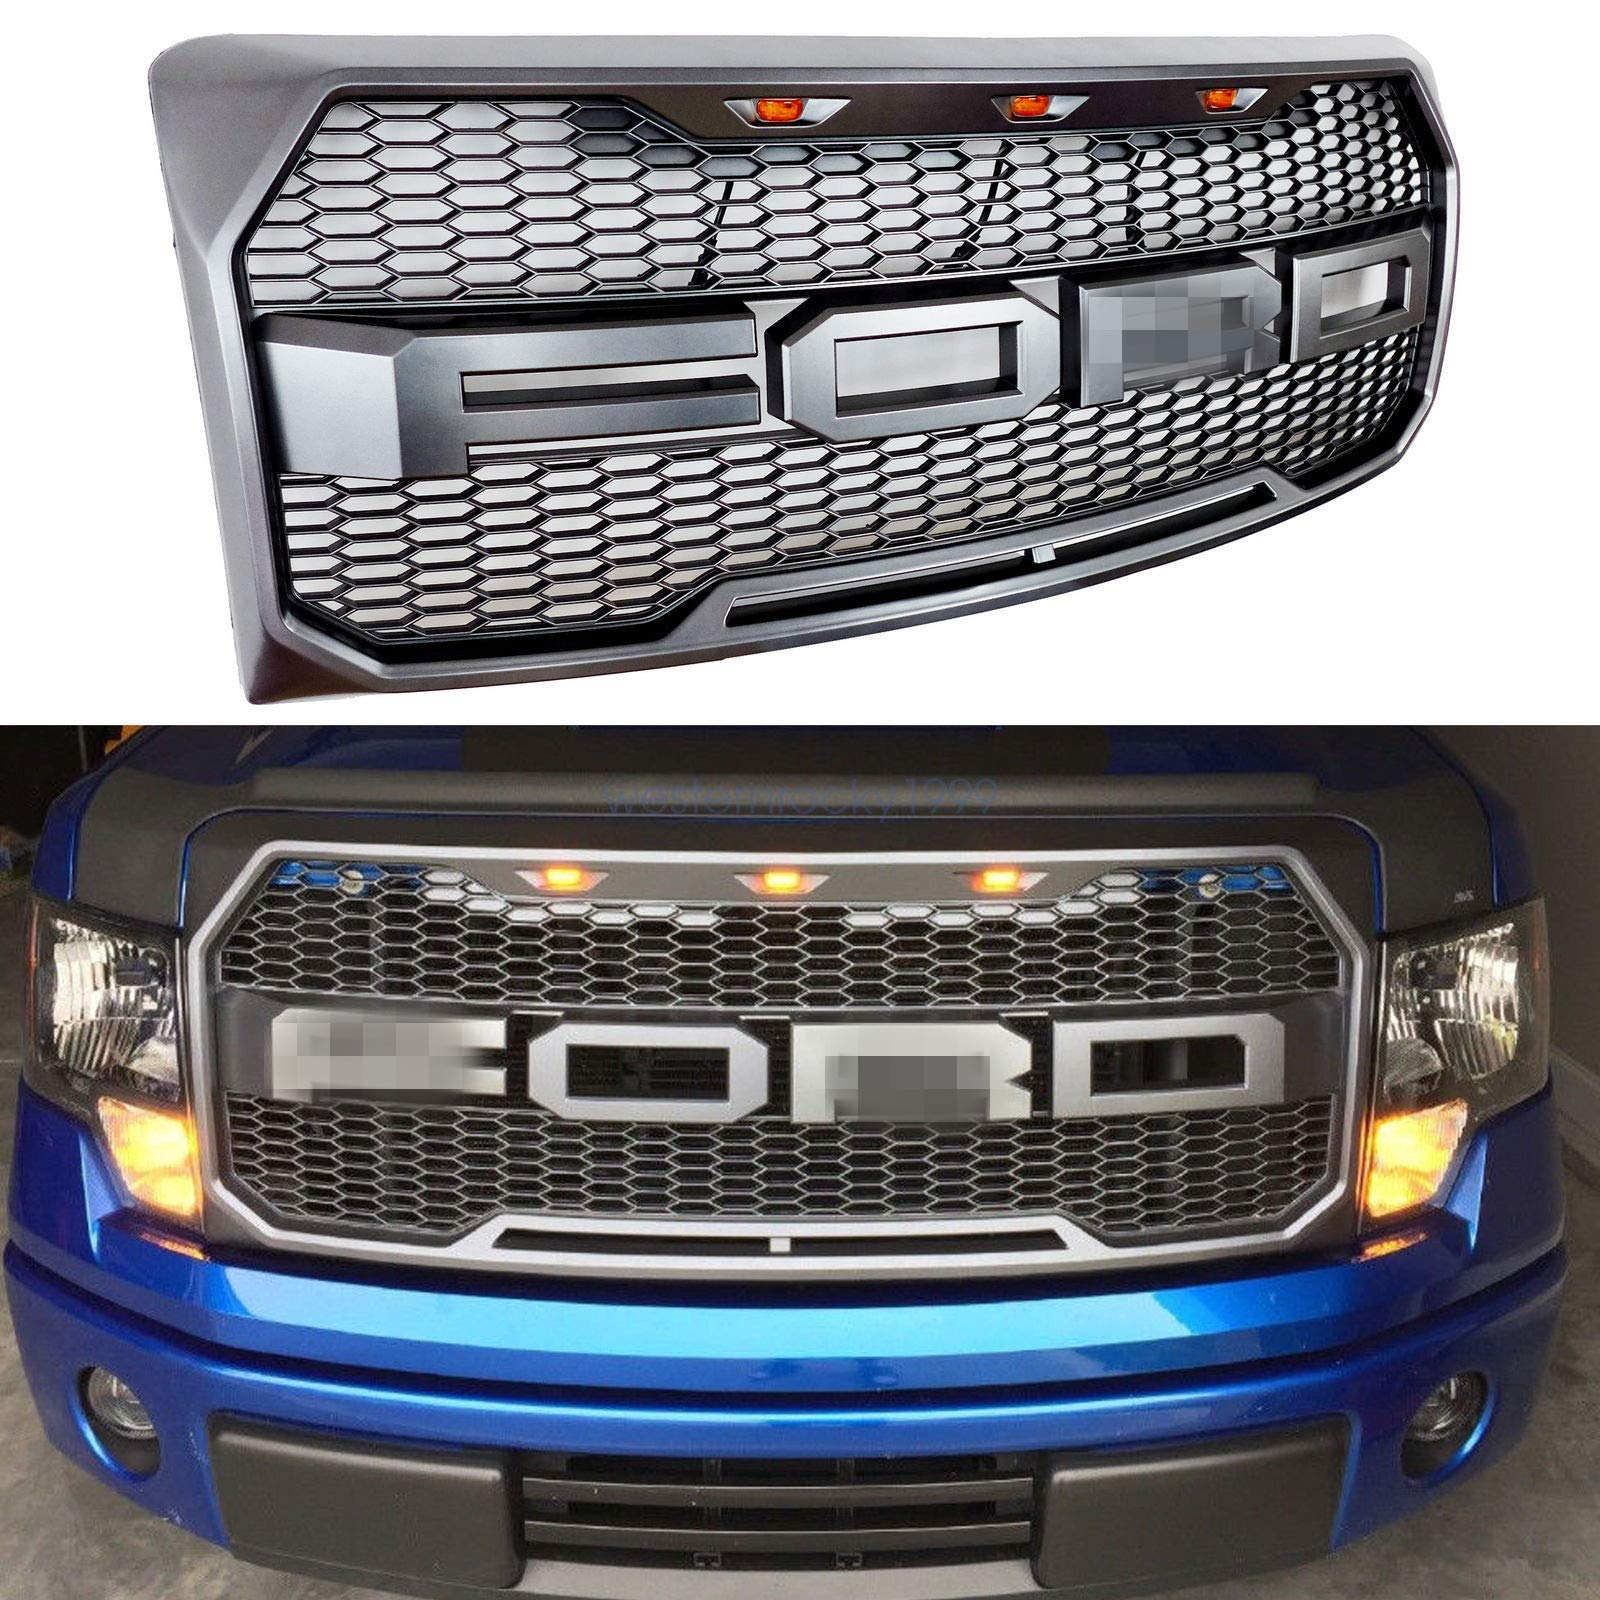 Front Grille Fits 2009-2014 FORD F150 Raptor Style Grill Kits With Amber LED Light and F&R Letter (Grey)